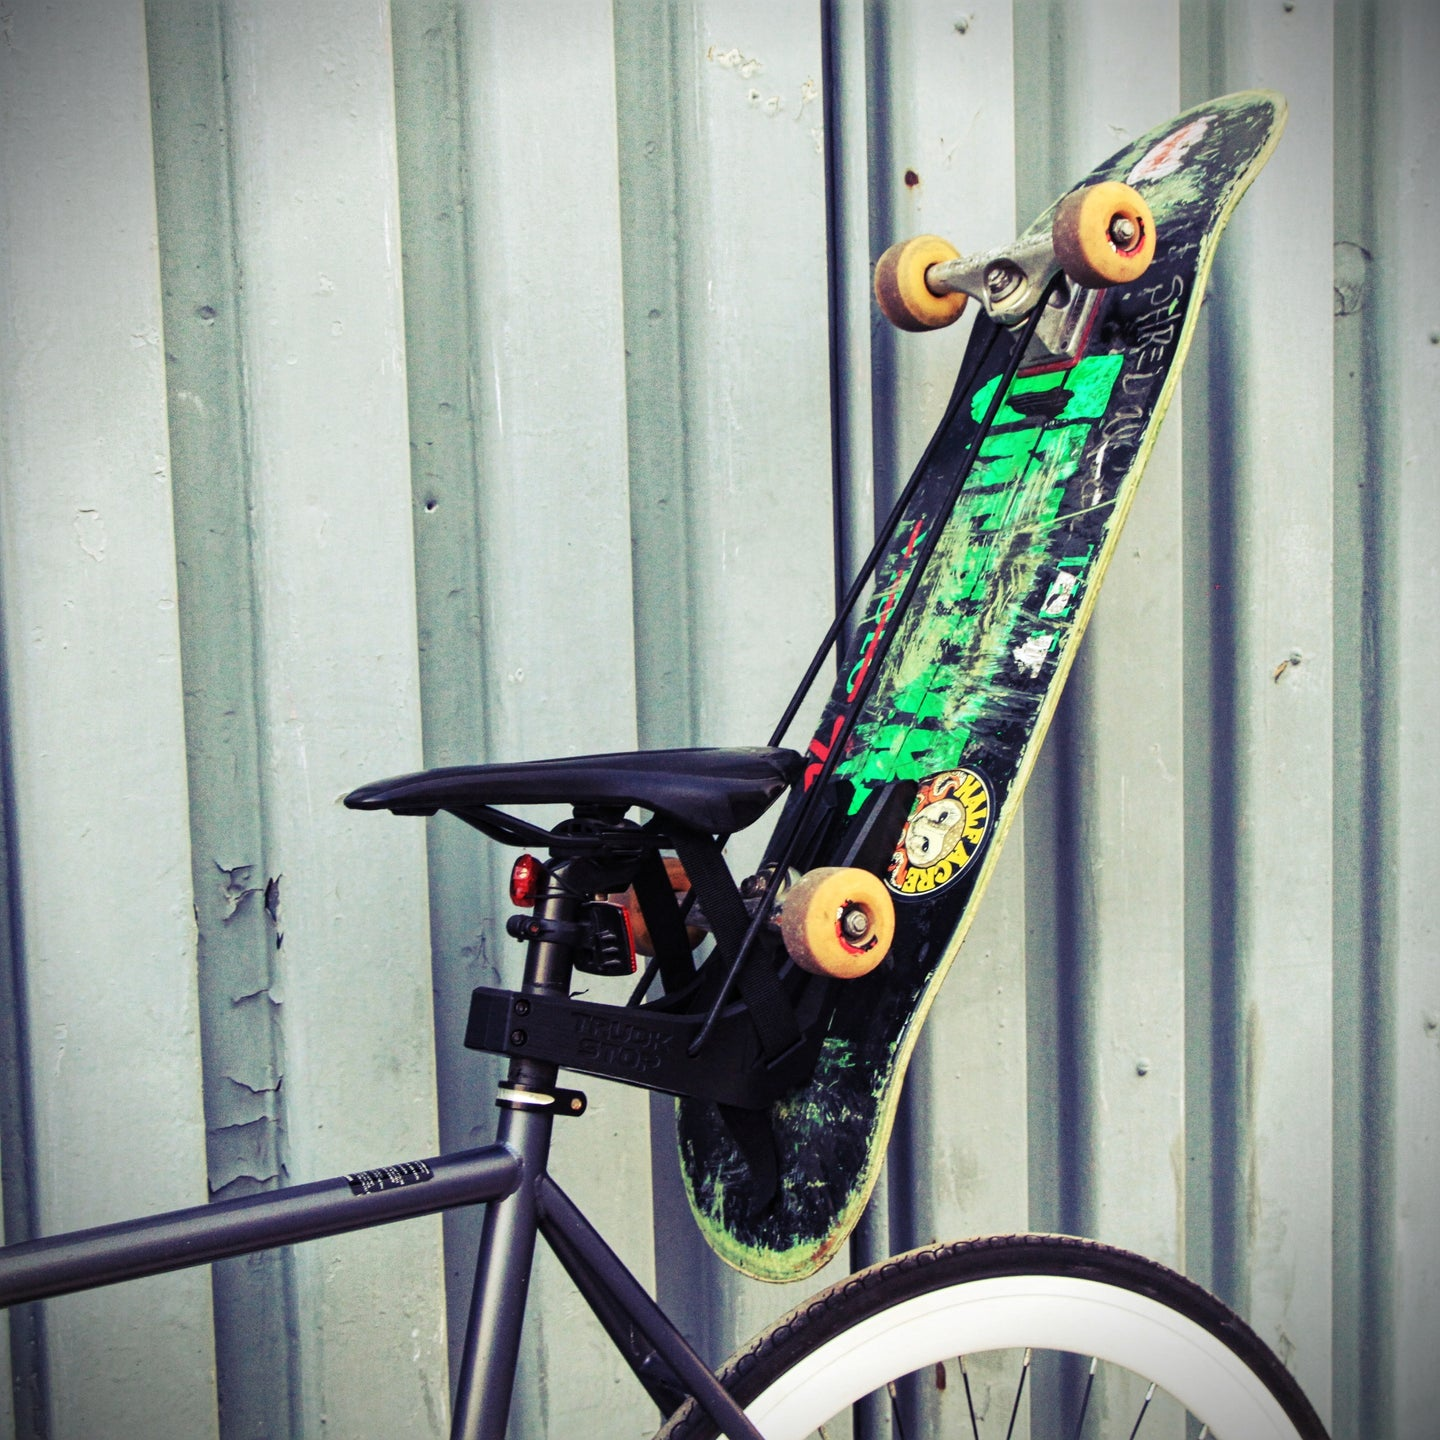 Truck Stop - Bike Seat Skateboard Holder